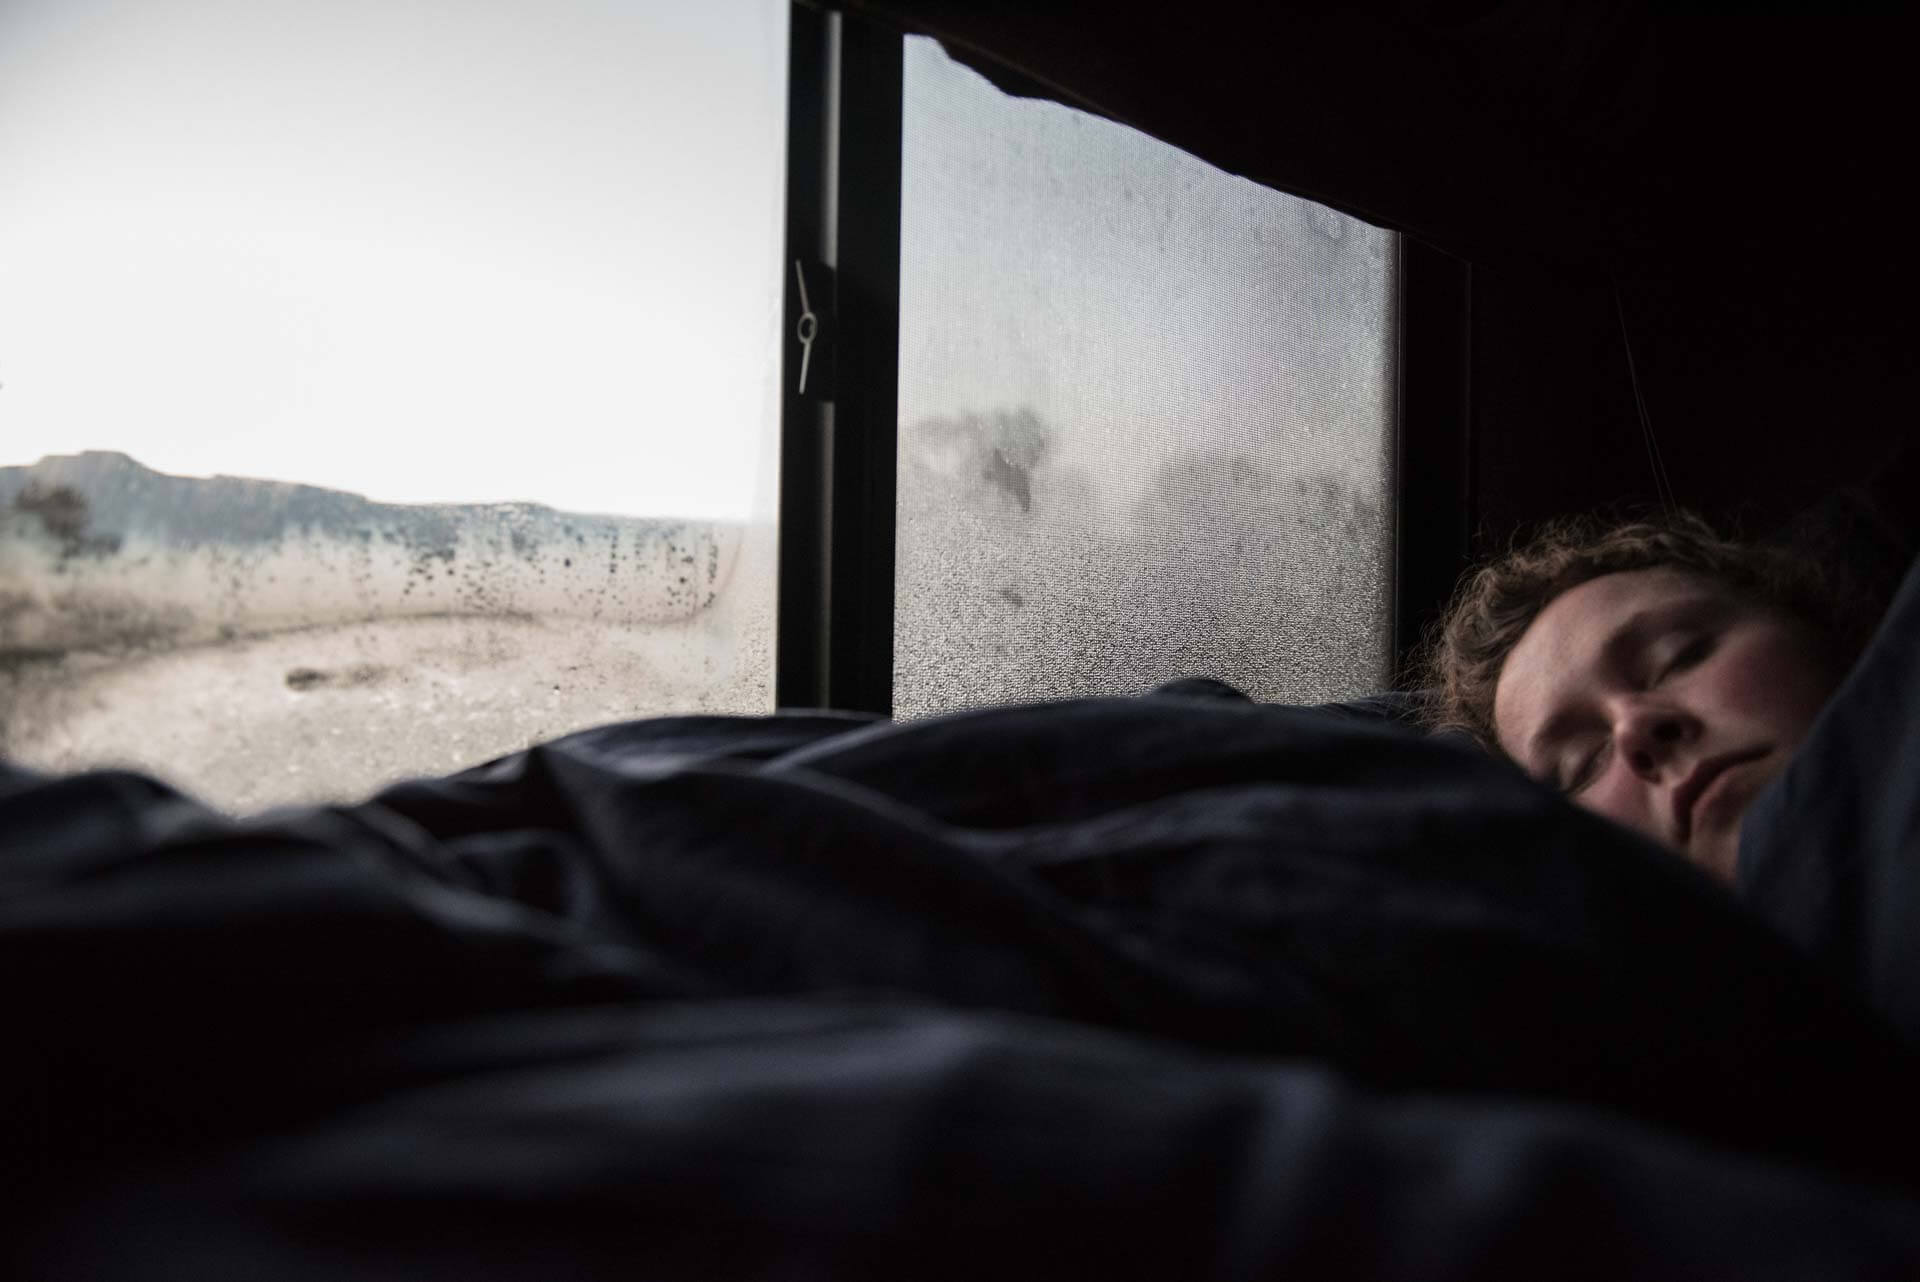 Sleeping in the RV